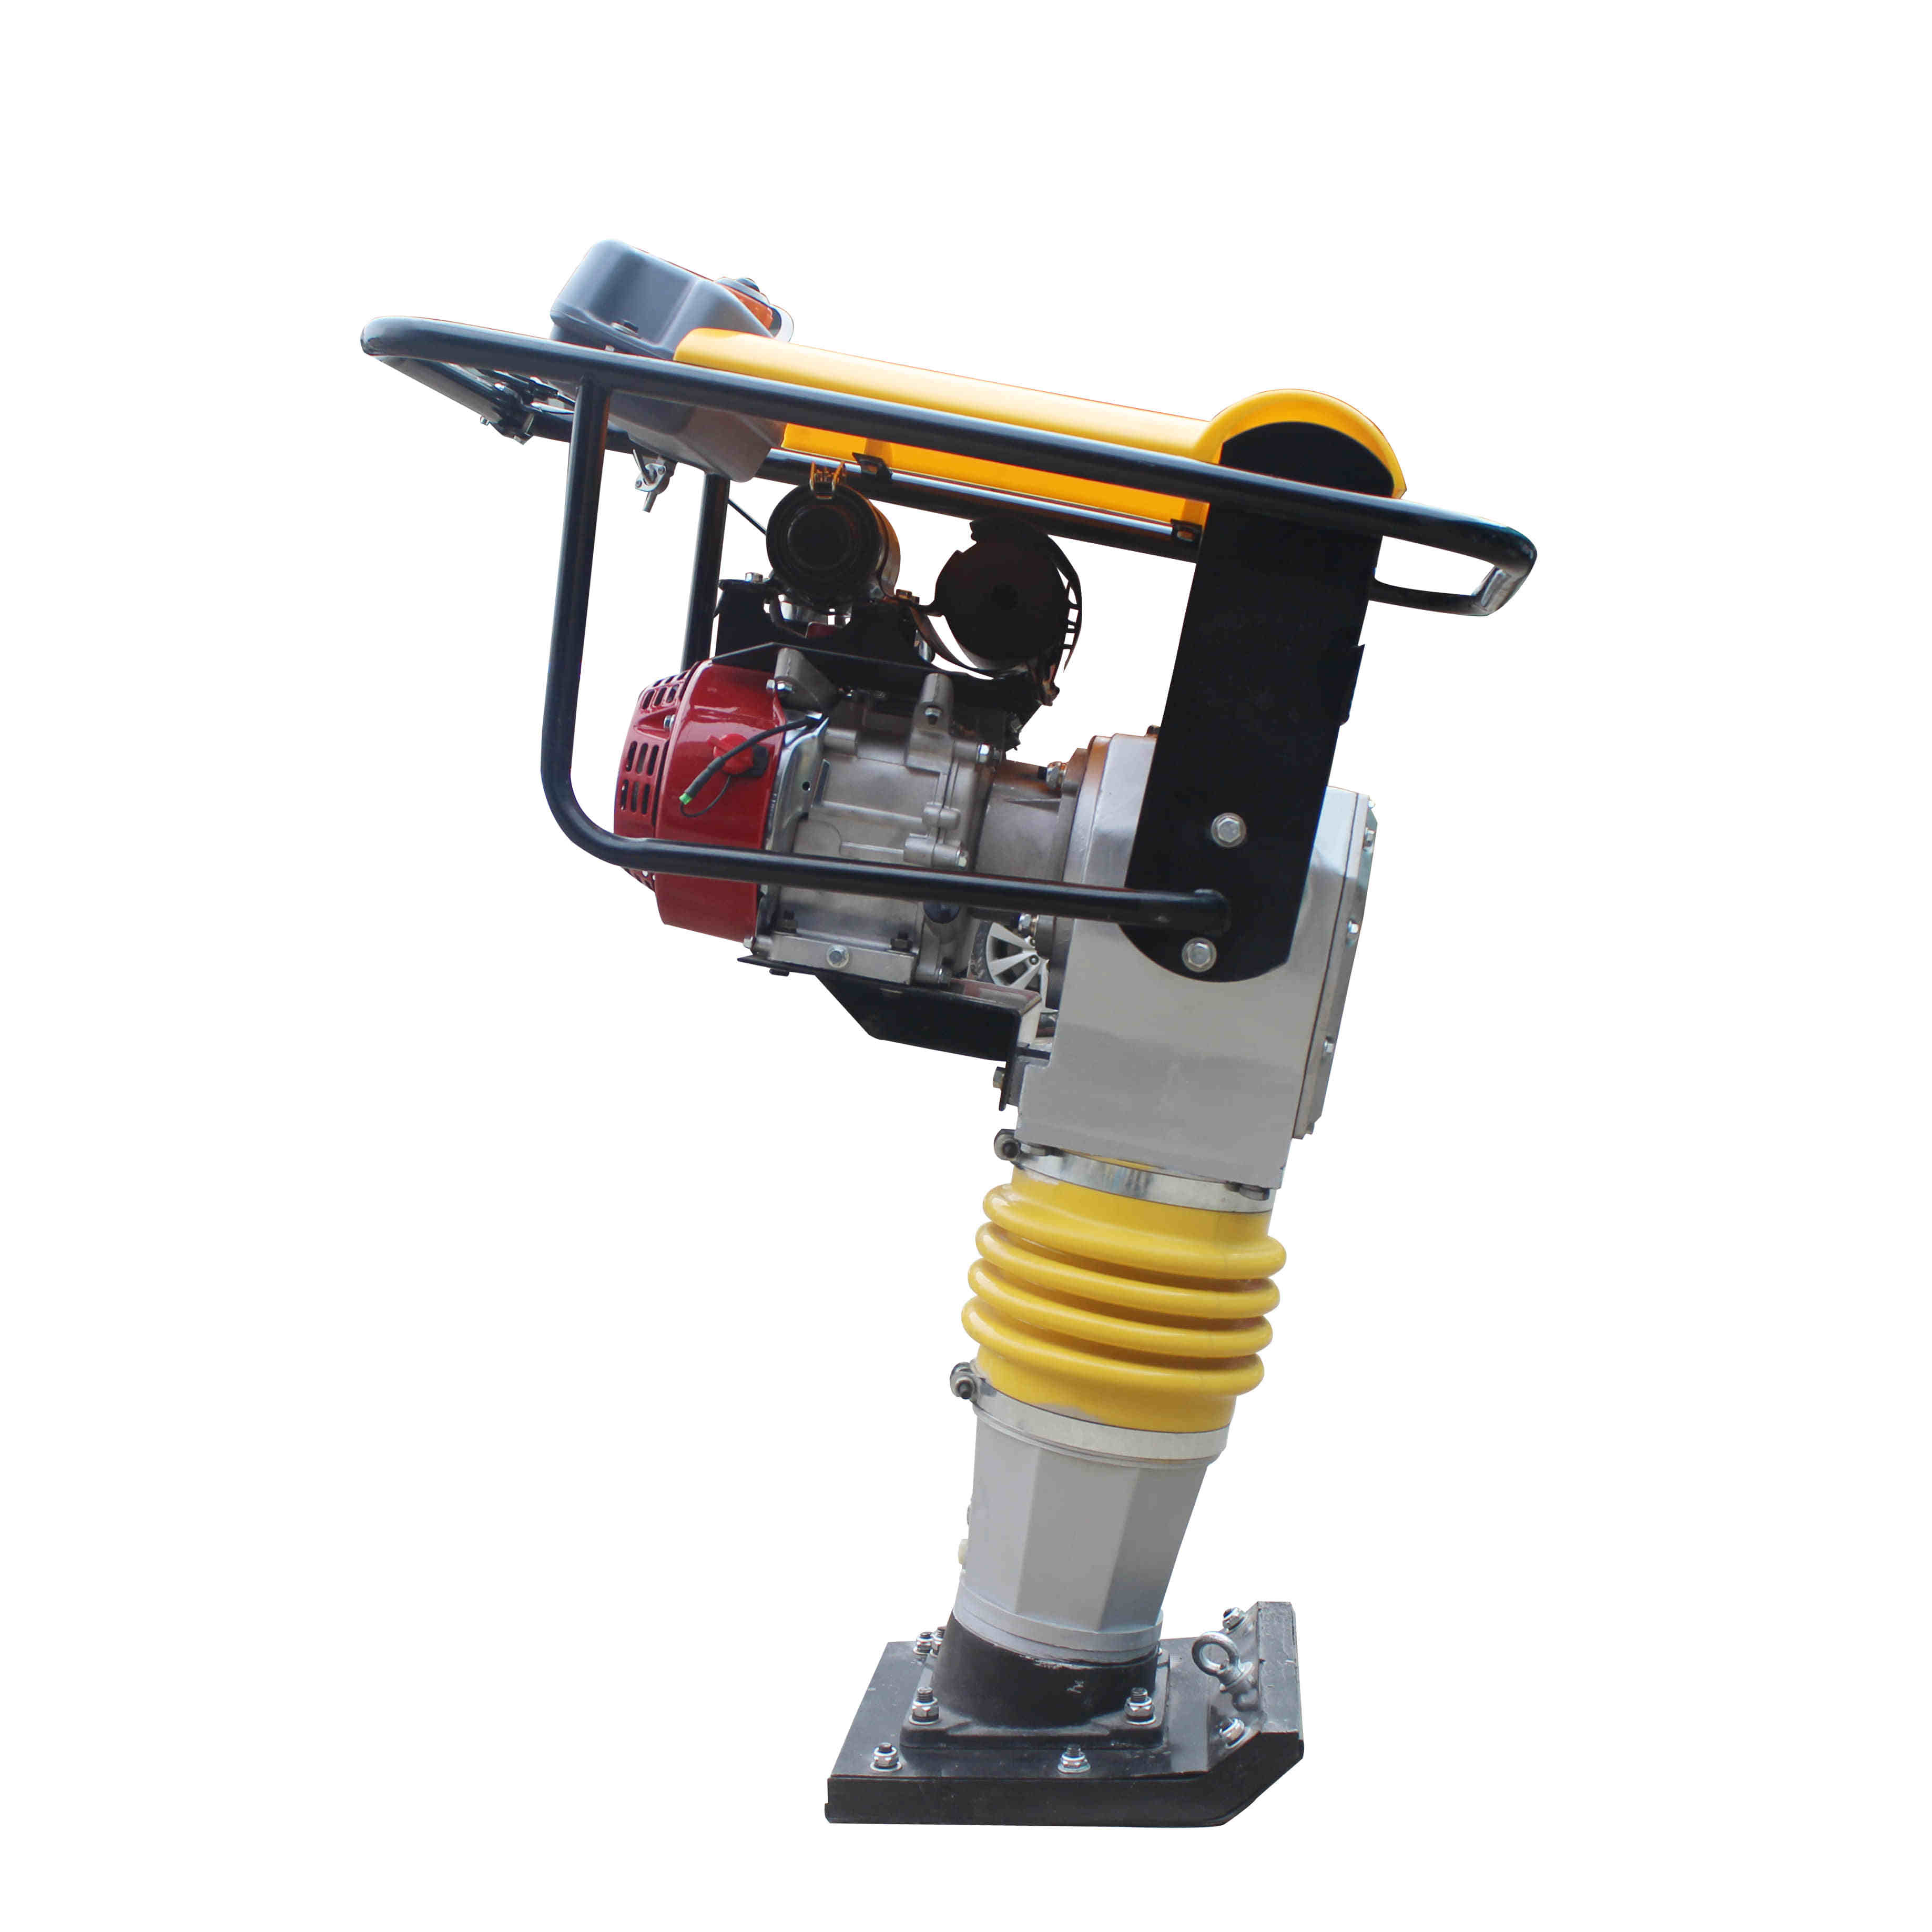 ADR110A electric tamping rammer